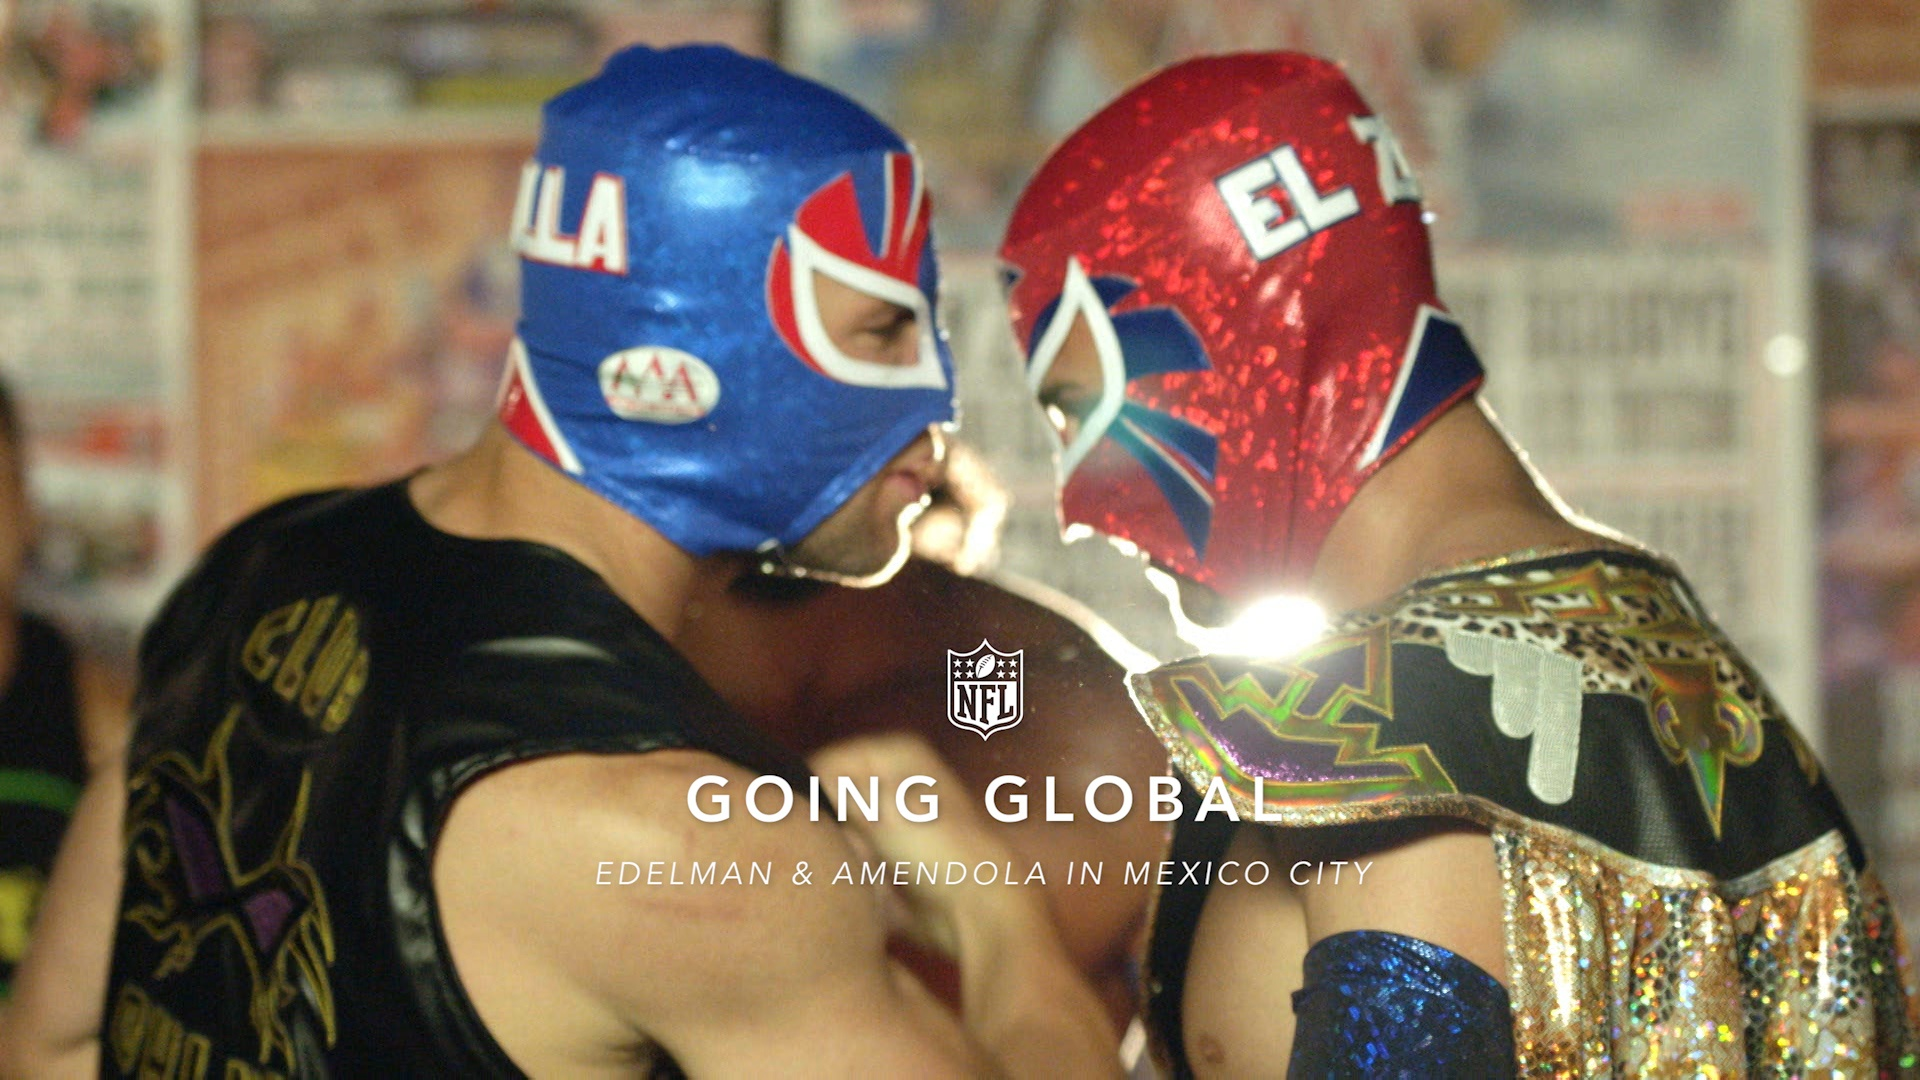 Thumbnail for Going Global: Danny Amendola and Julian Edelman in Mexico